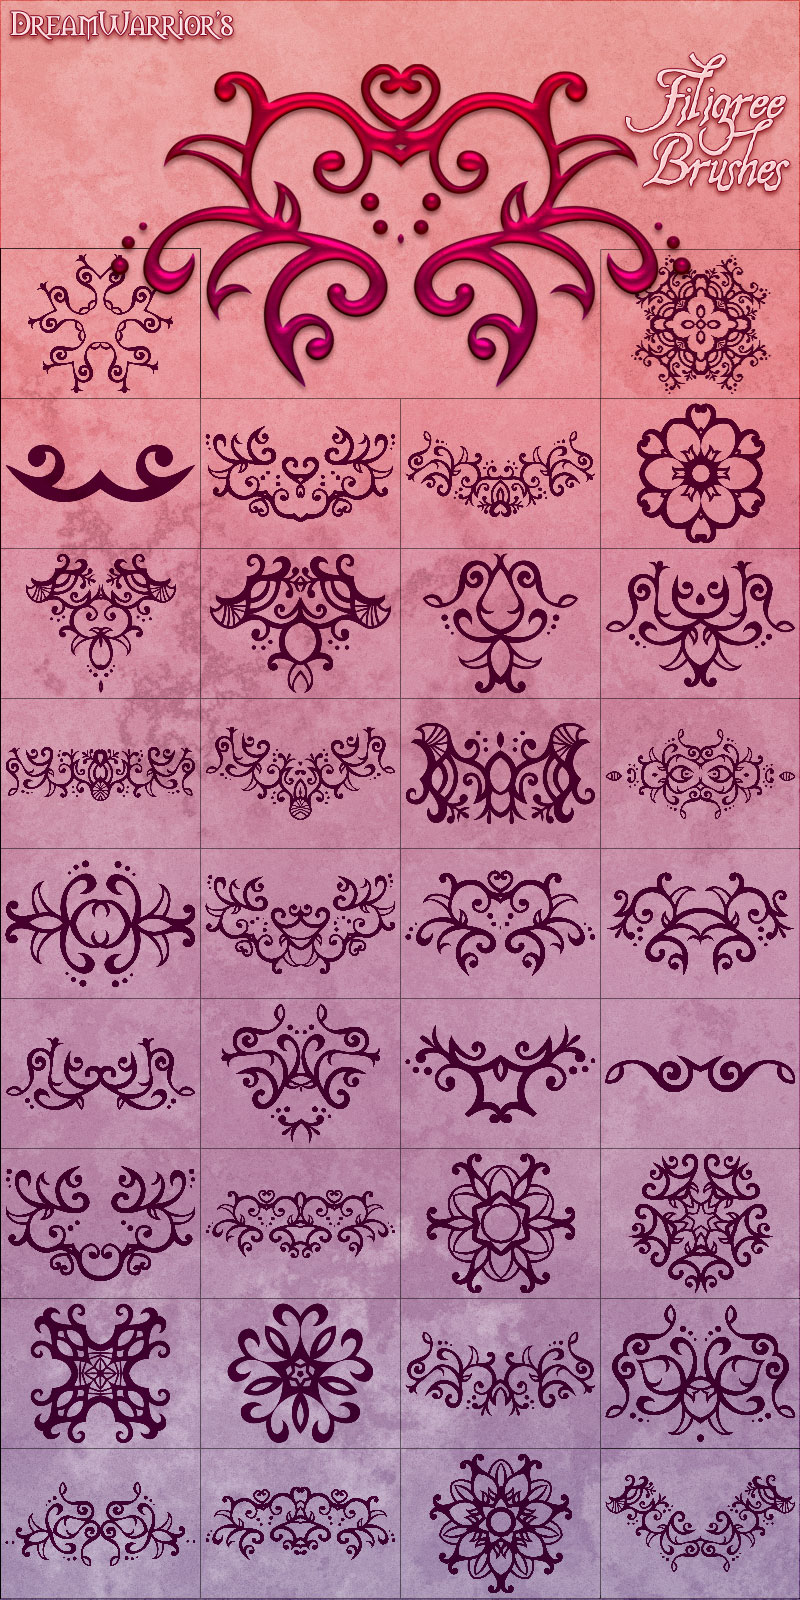 DW - Filigree Brushes 1